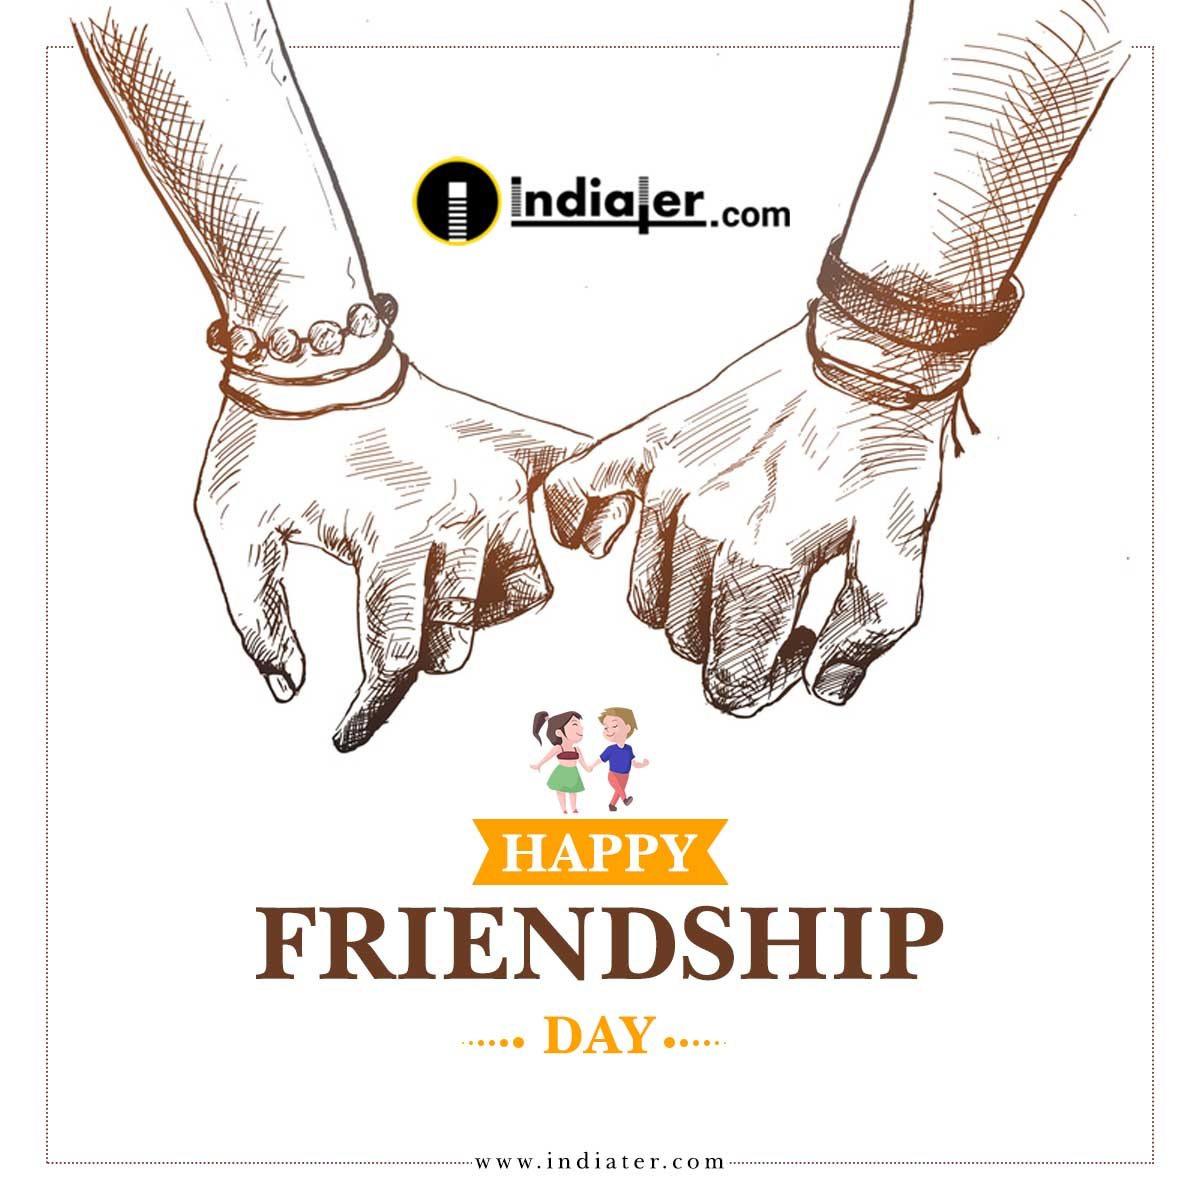 happy-friendship-day-wishes-creative-designs-template-free-download